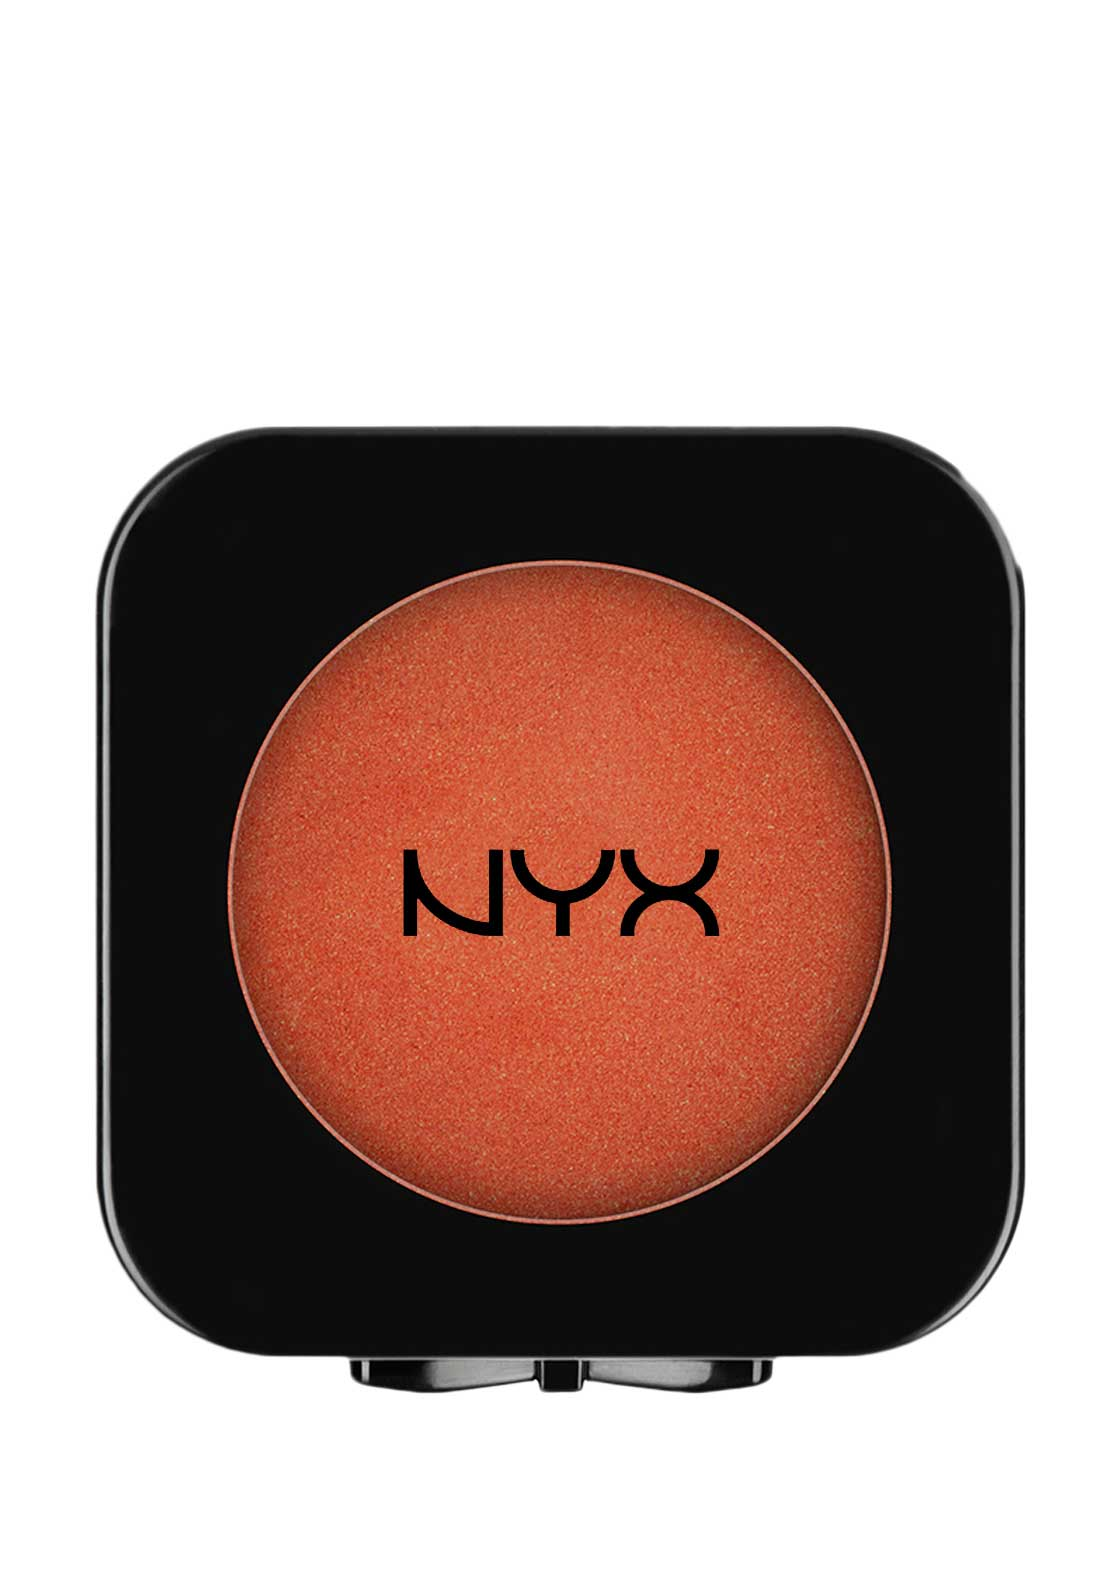 NYX Make Up HD Blusher, Amber, 11